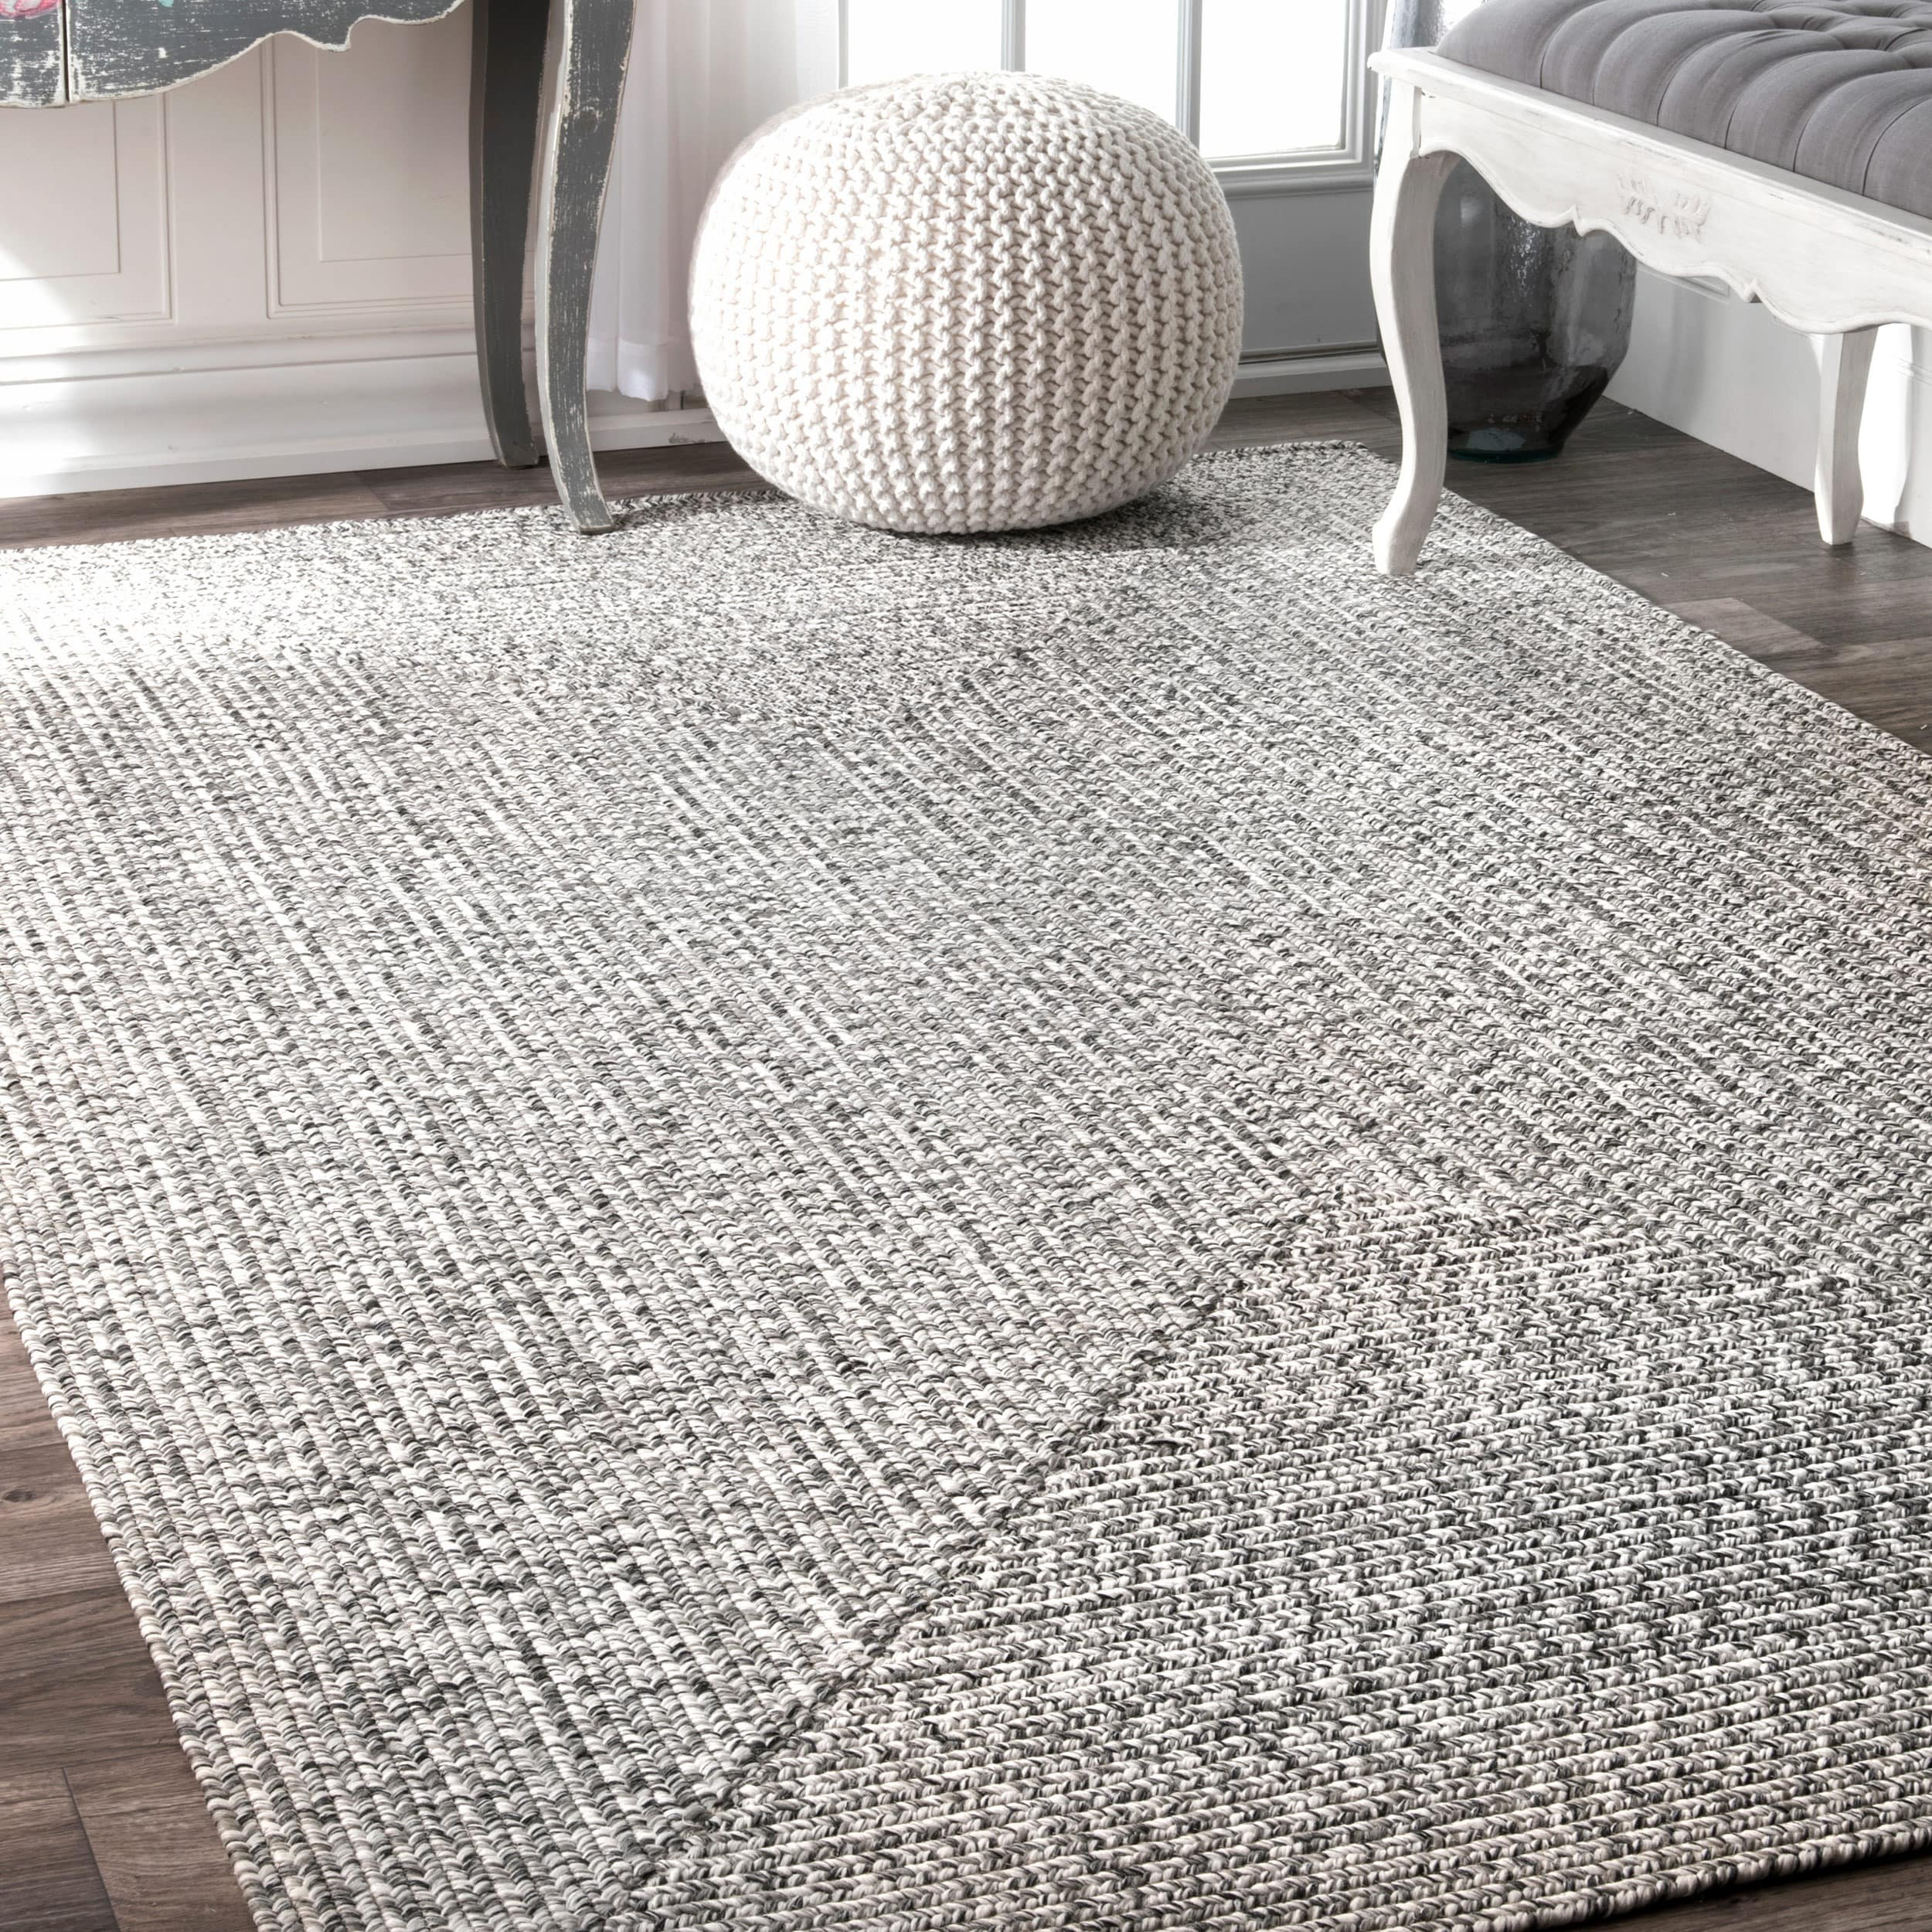 Nuloom Grey Indoor Outdoor Braided Area Rug 4 X27